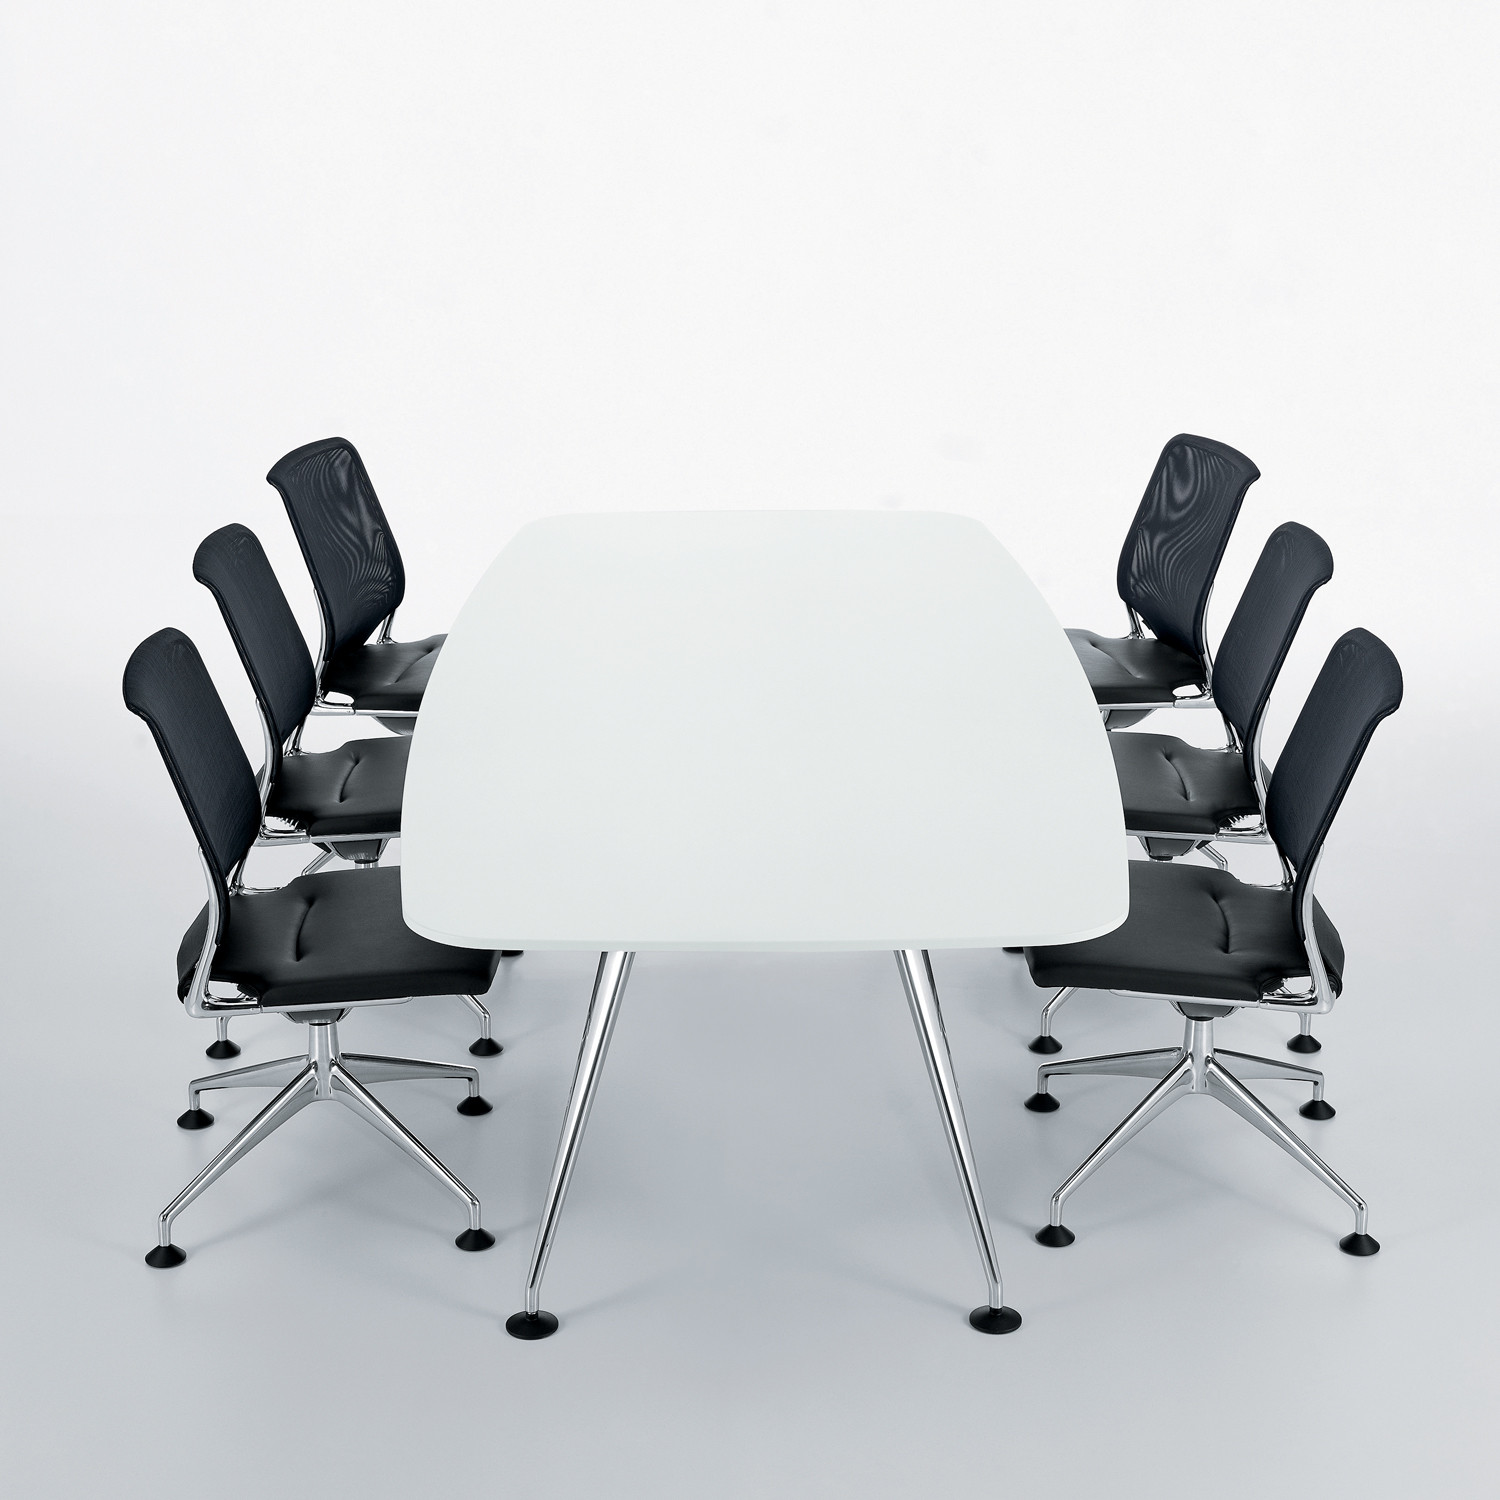 Vitra MedaMorph Conference Tables